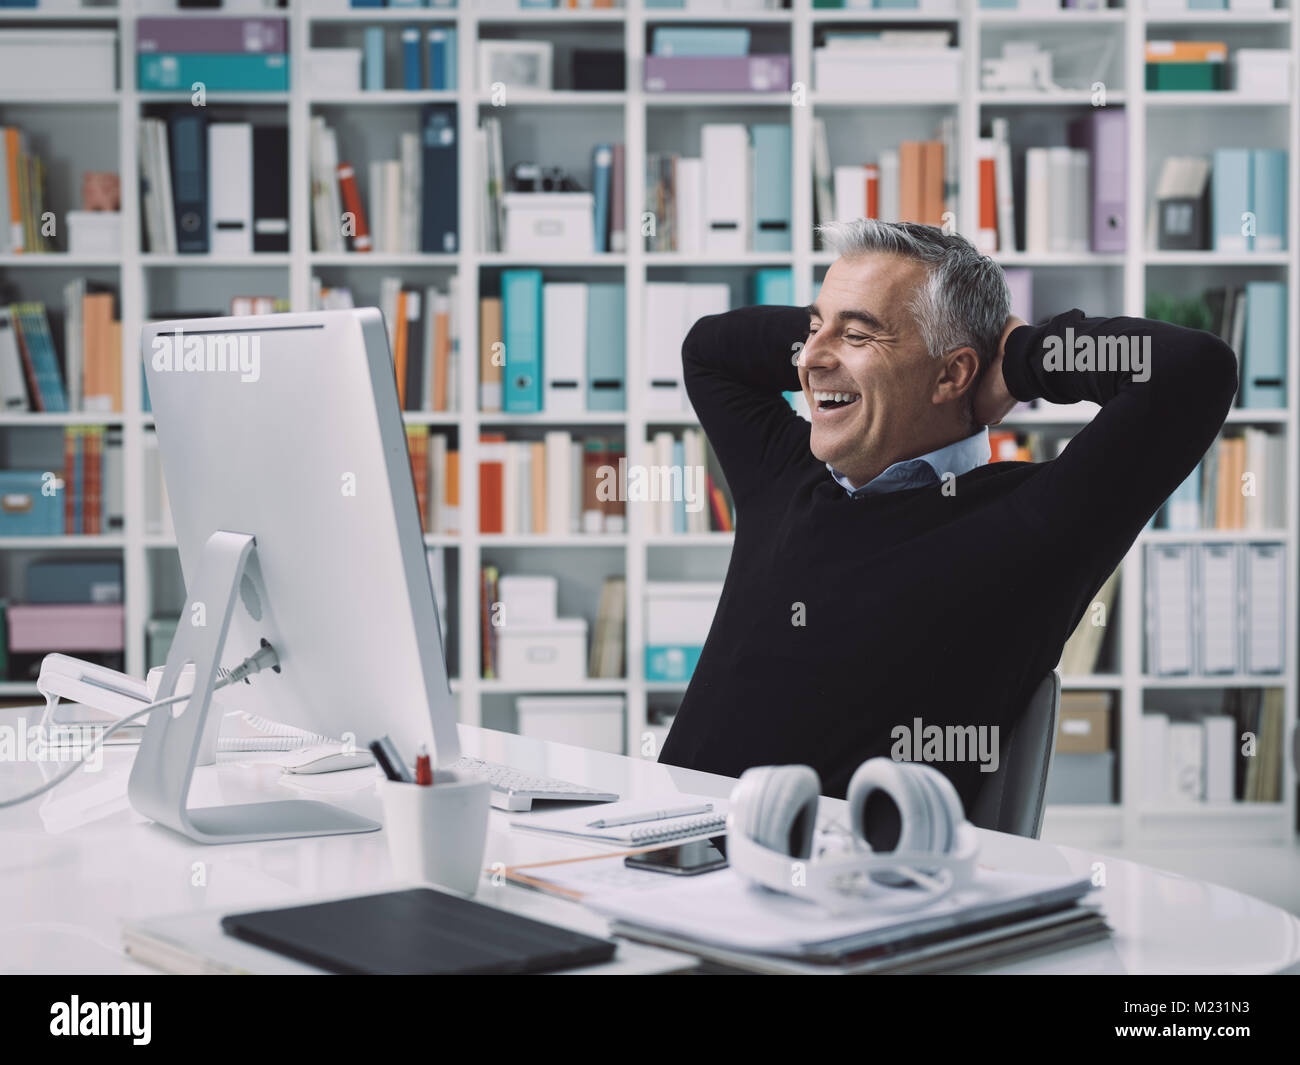 Confident smiling businessman relaxing in his office with hands behind head: successful business and achievement - Stock Image